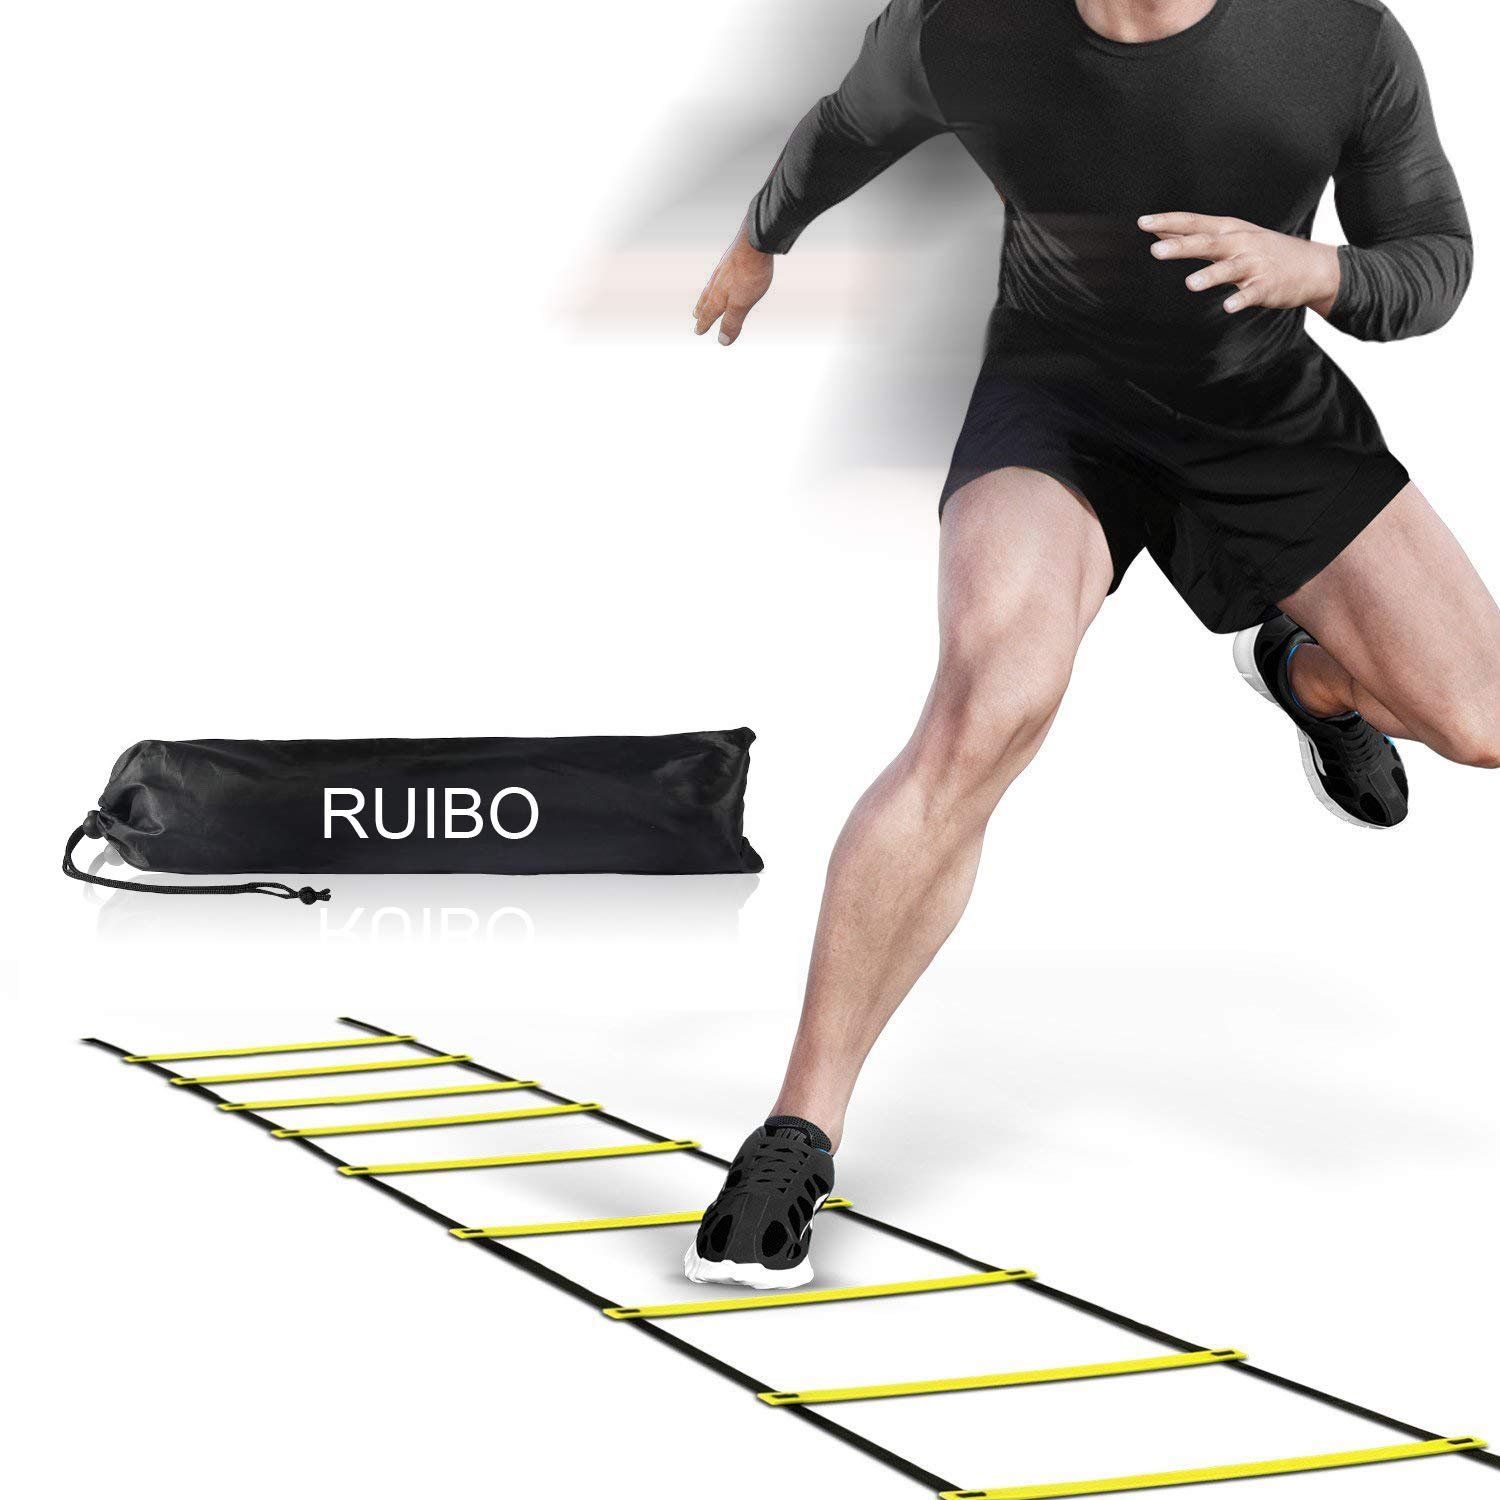 Agility Ladder Speed Training Equipment/Speed Ladders for Football, Soccer & Other Sports - 20 Feet Length 12 Adjustable Rungs